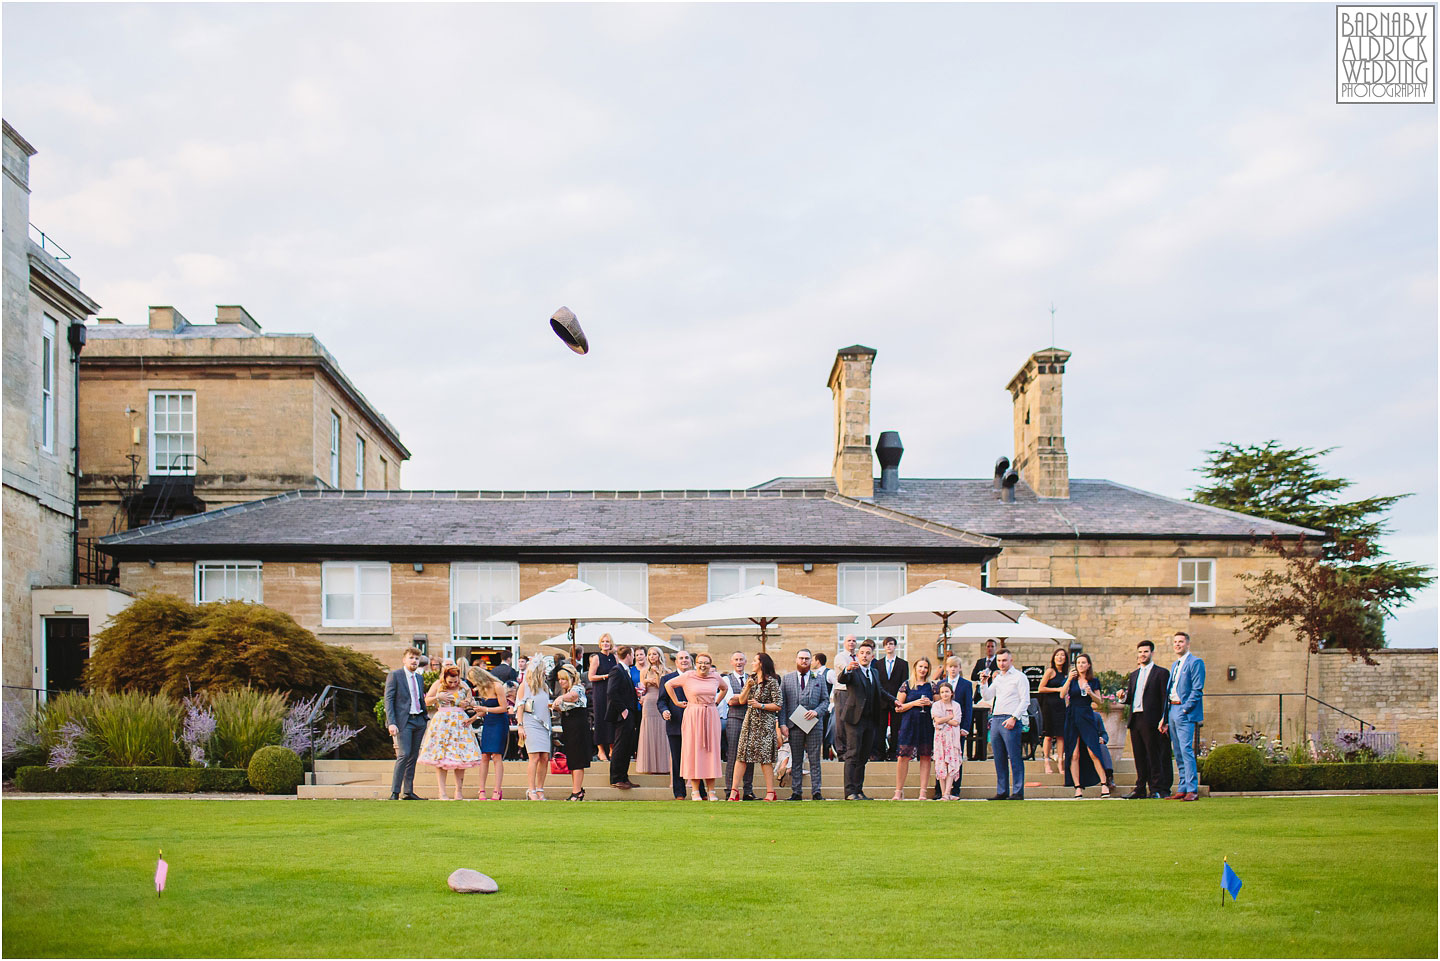 Flat Cap throwing wedding game at Bowcliffe Hall, Amazing Yorkshire Wedding Photos, Best Yorkshire Wedding Photos 2018